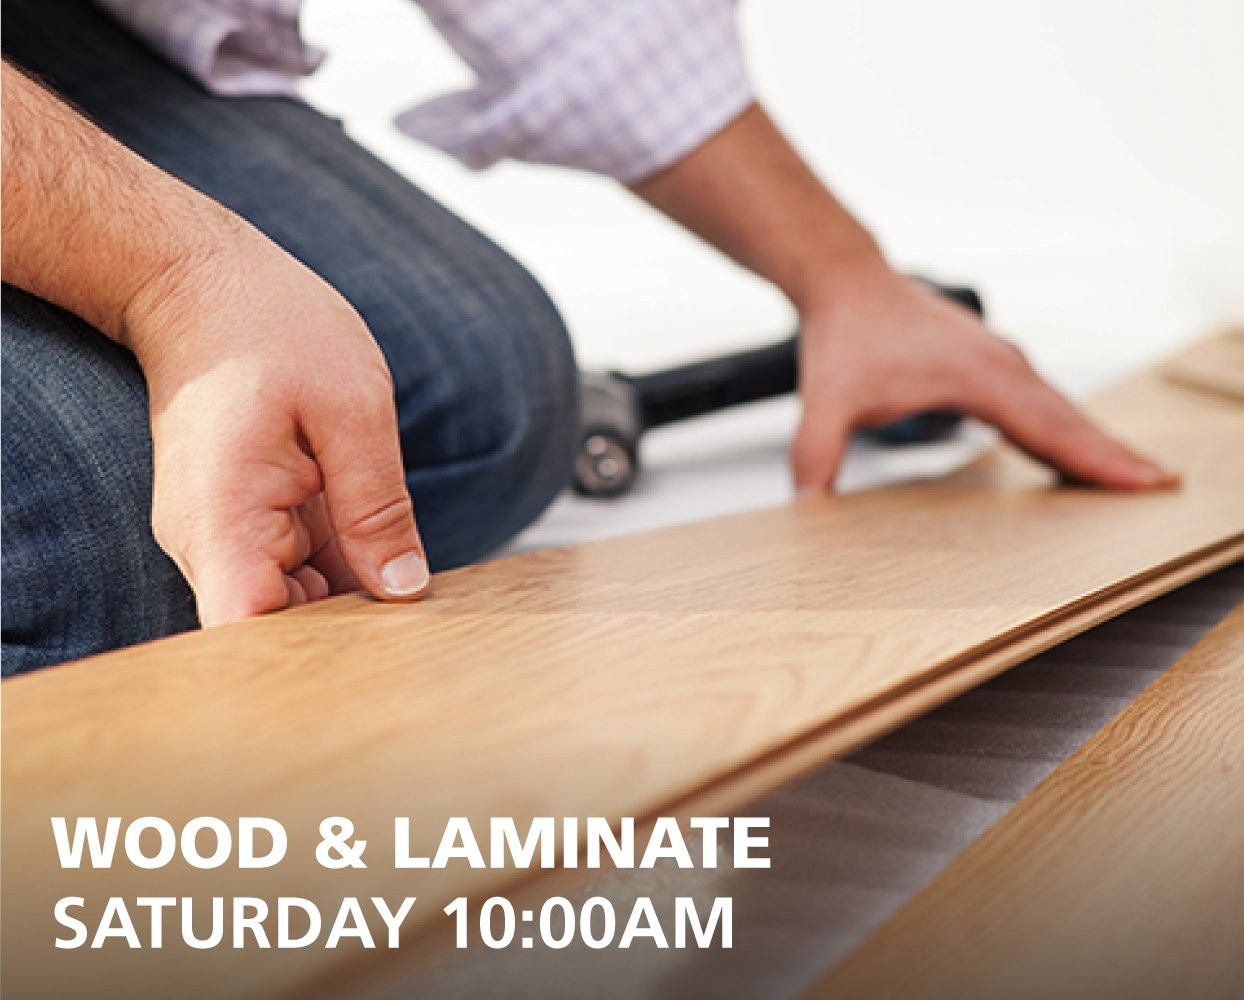 Wood & Laminate How To classes - Saturdays at 10:00am